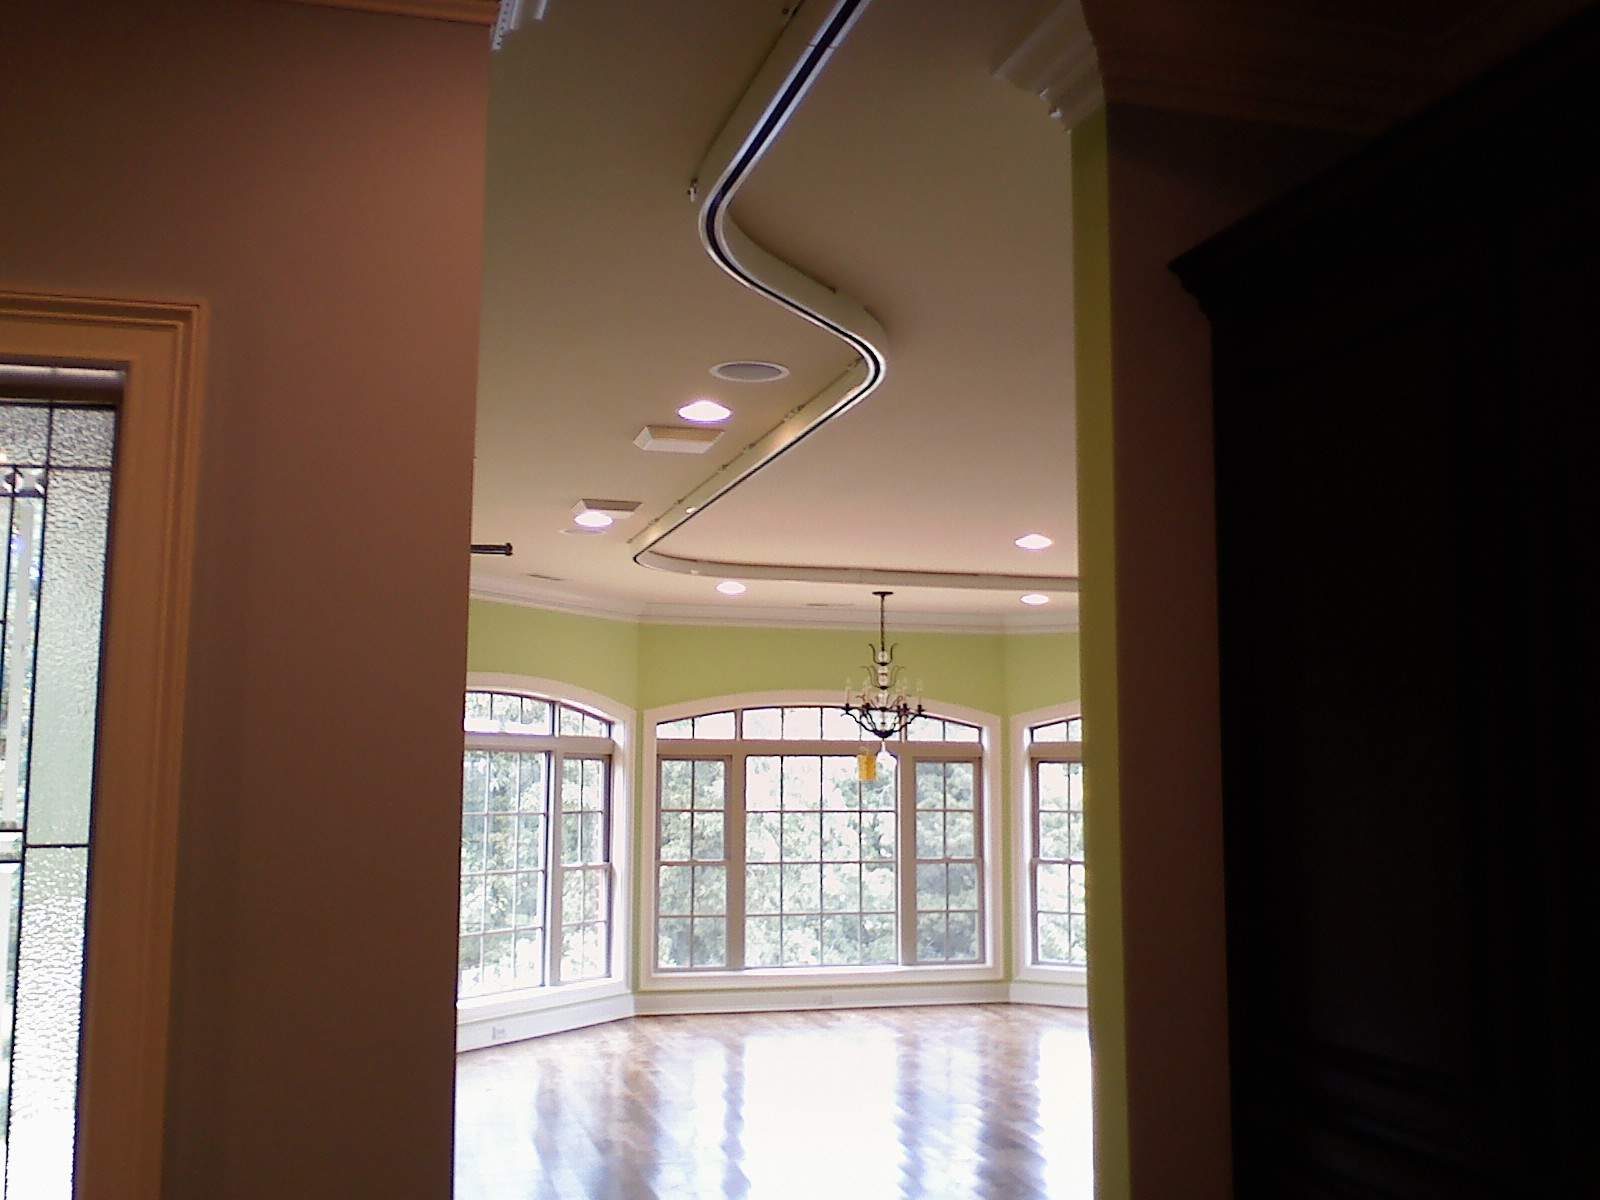 Ceiling Track Lifts Access And Mobility